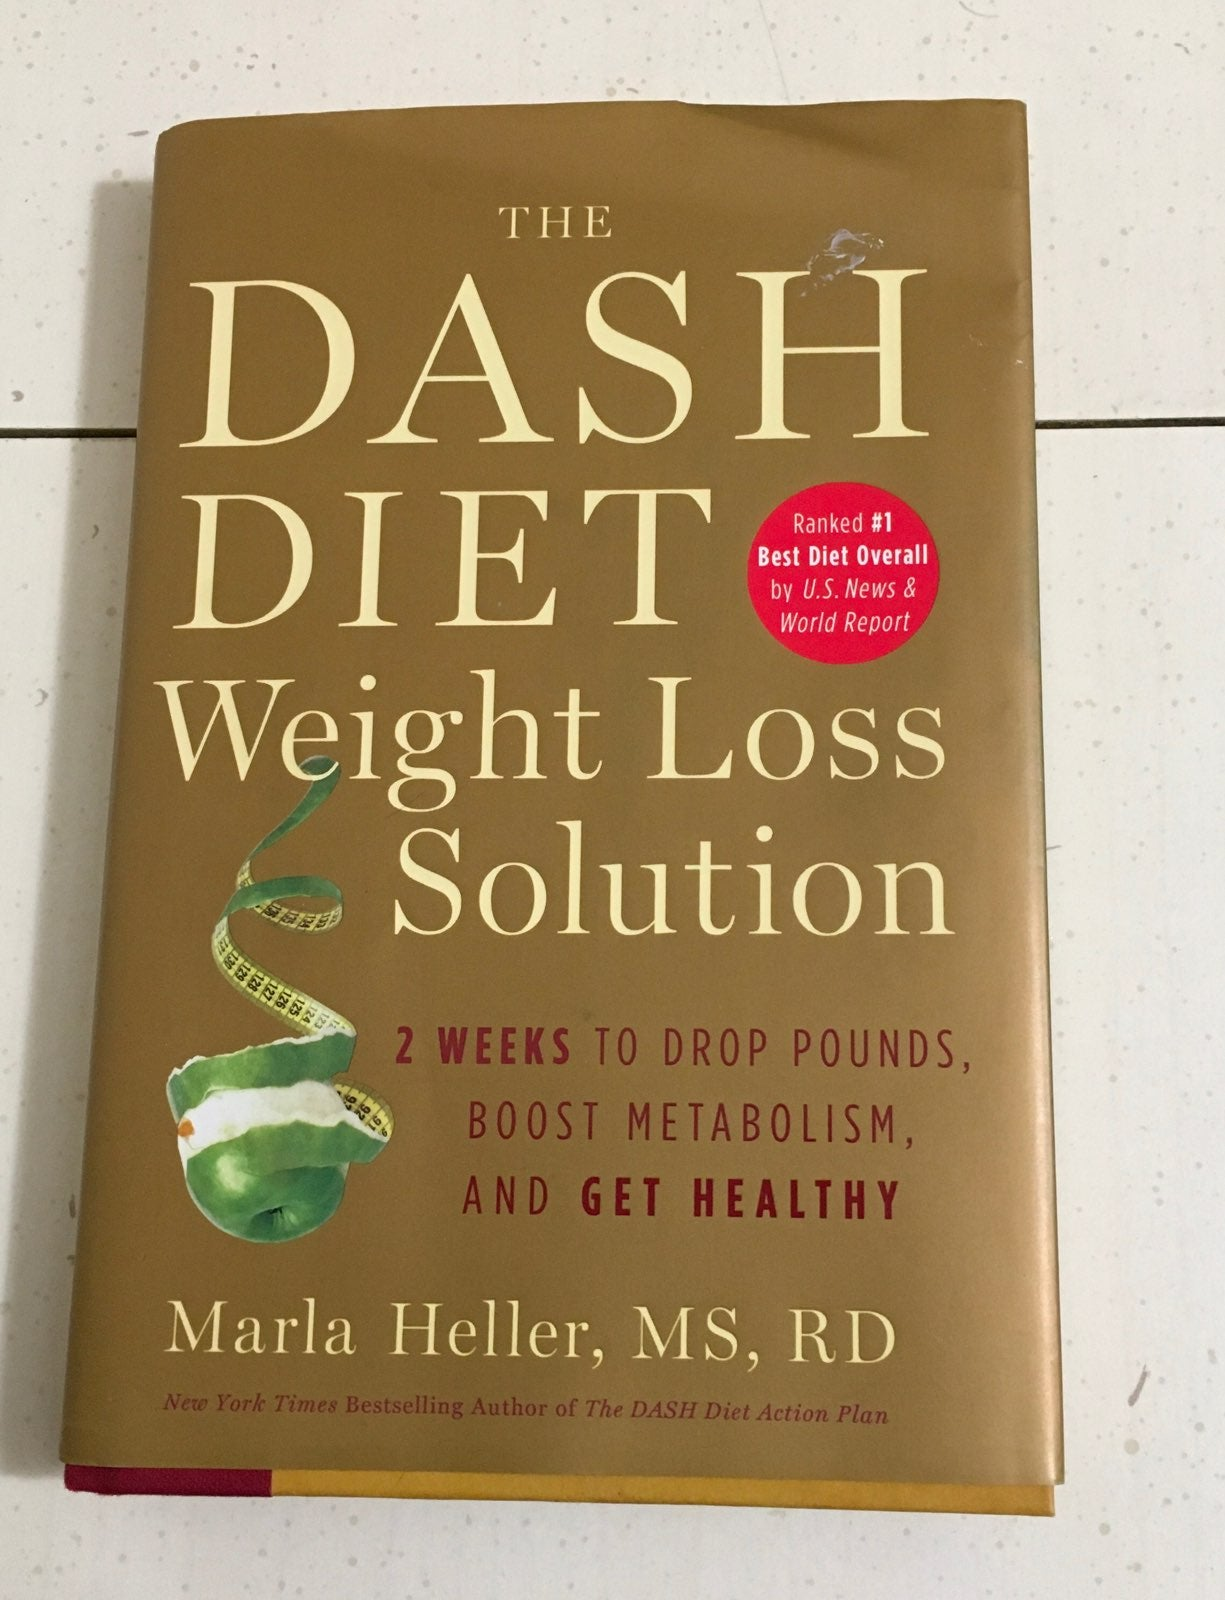 The Dash Diet - Weight Loss Solution